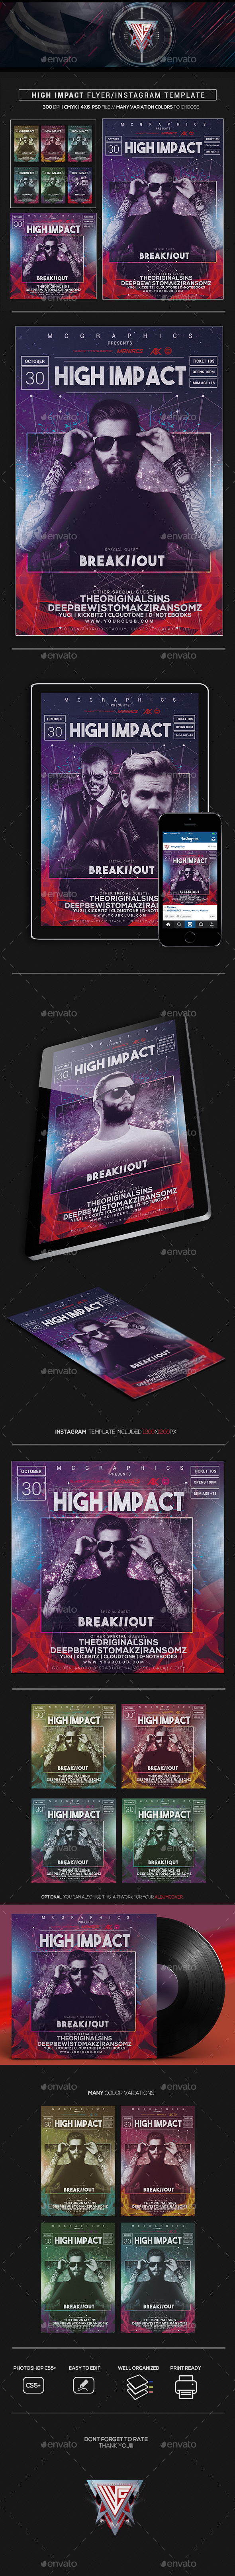 High Impact  Flyer/Instagram Template - Flyers Print Templates